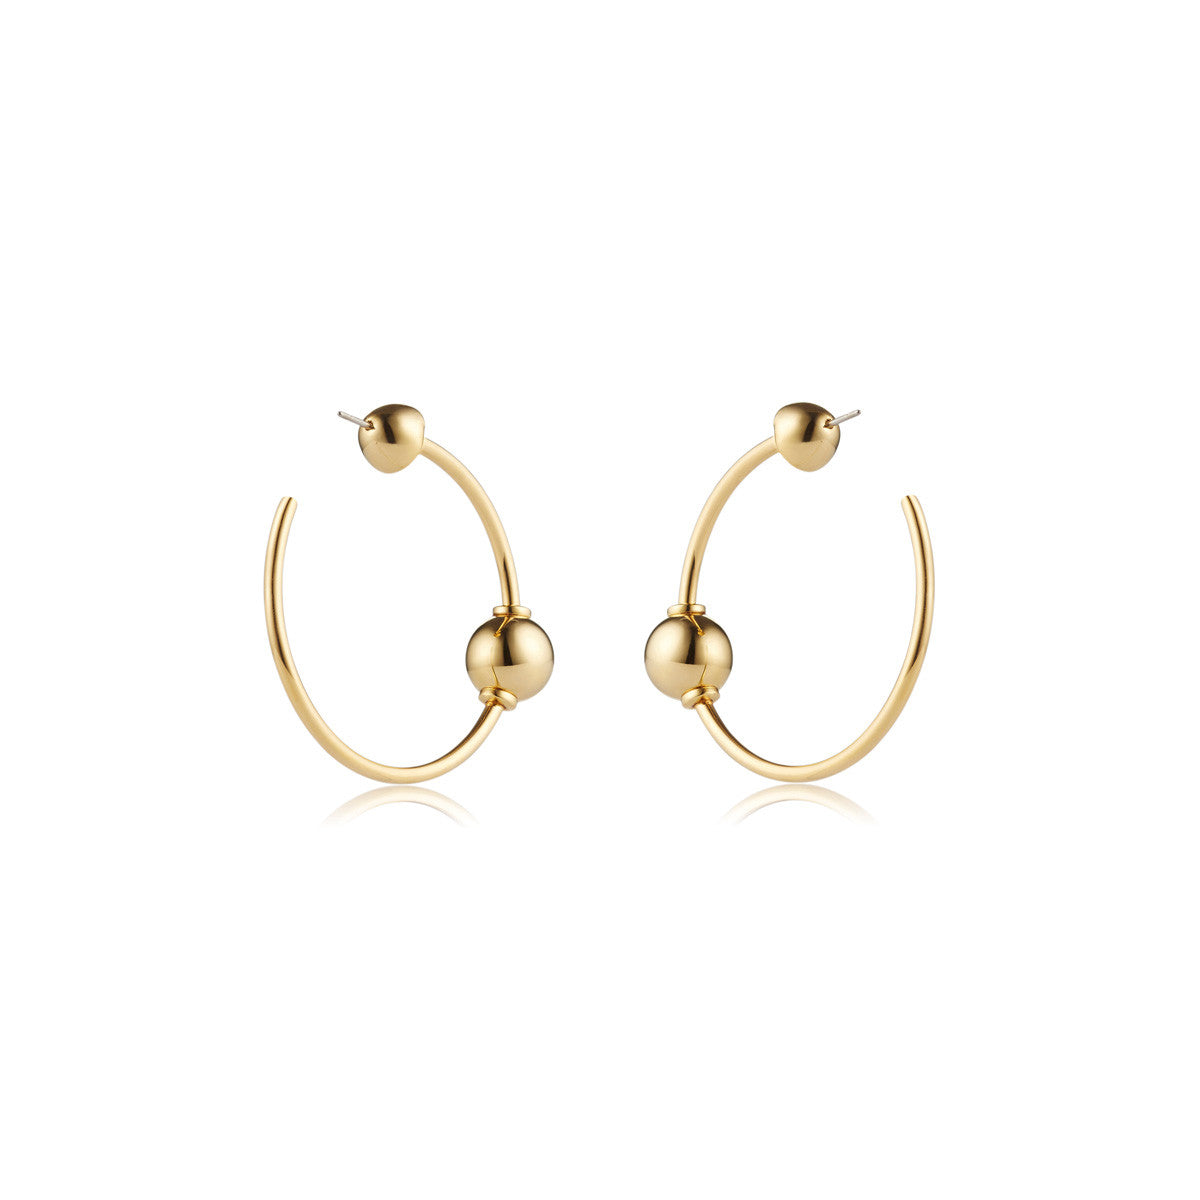 Solid brass, 18K gold plated Mars Circulus hoop earrings – back